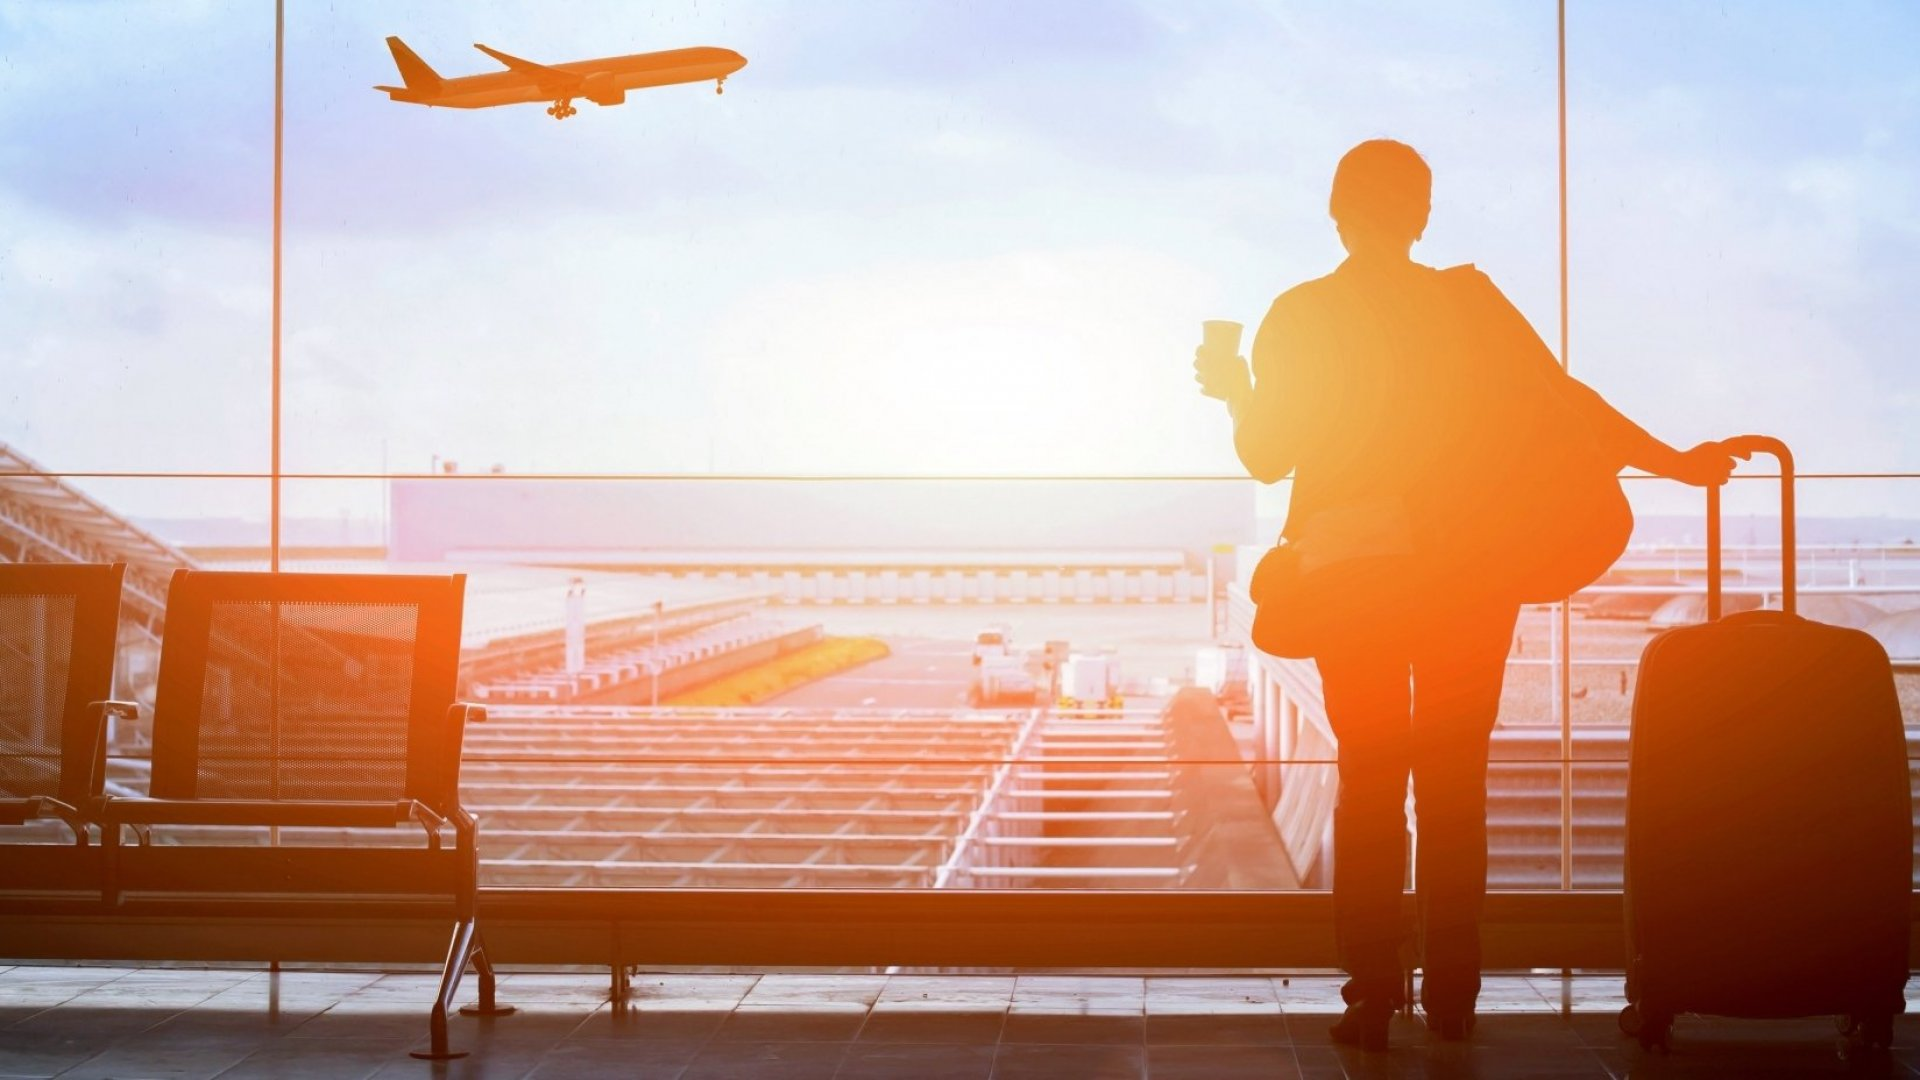 7 Strategies to Maximize Your Productivity While Traveling